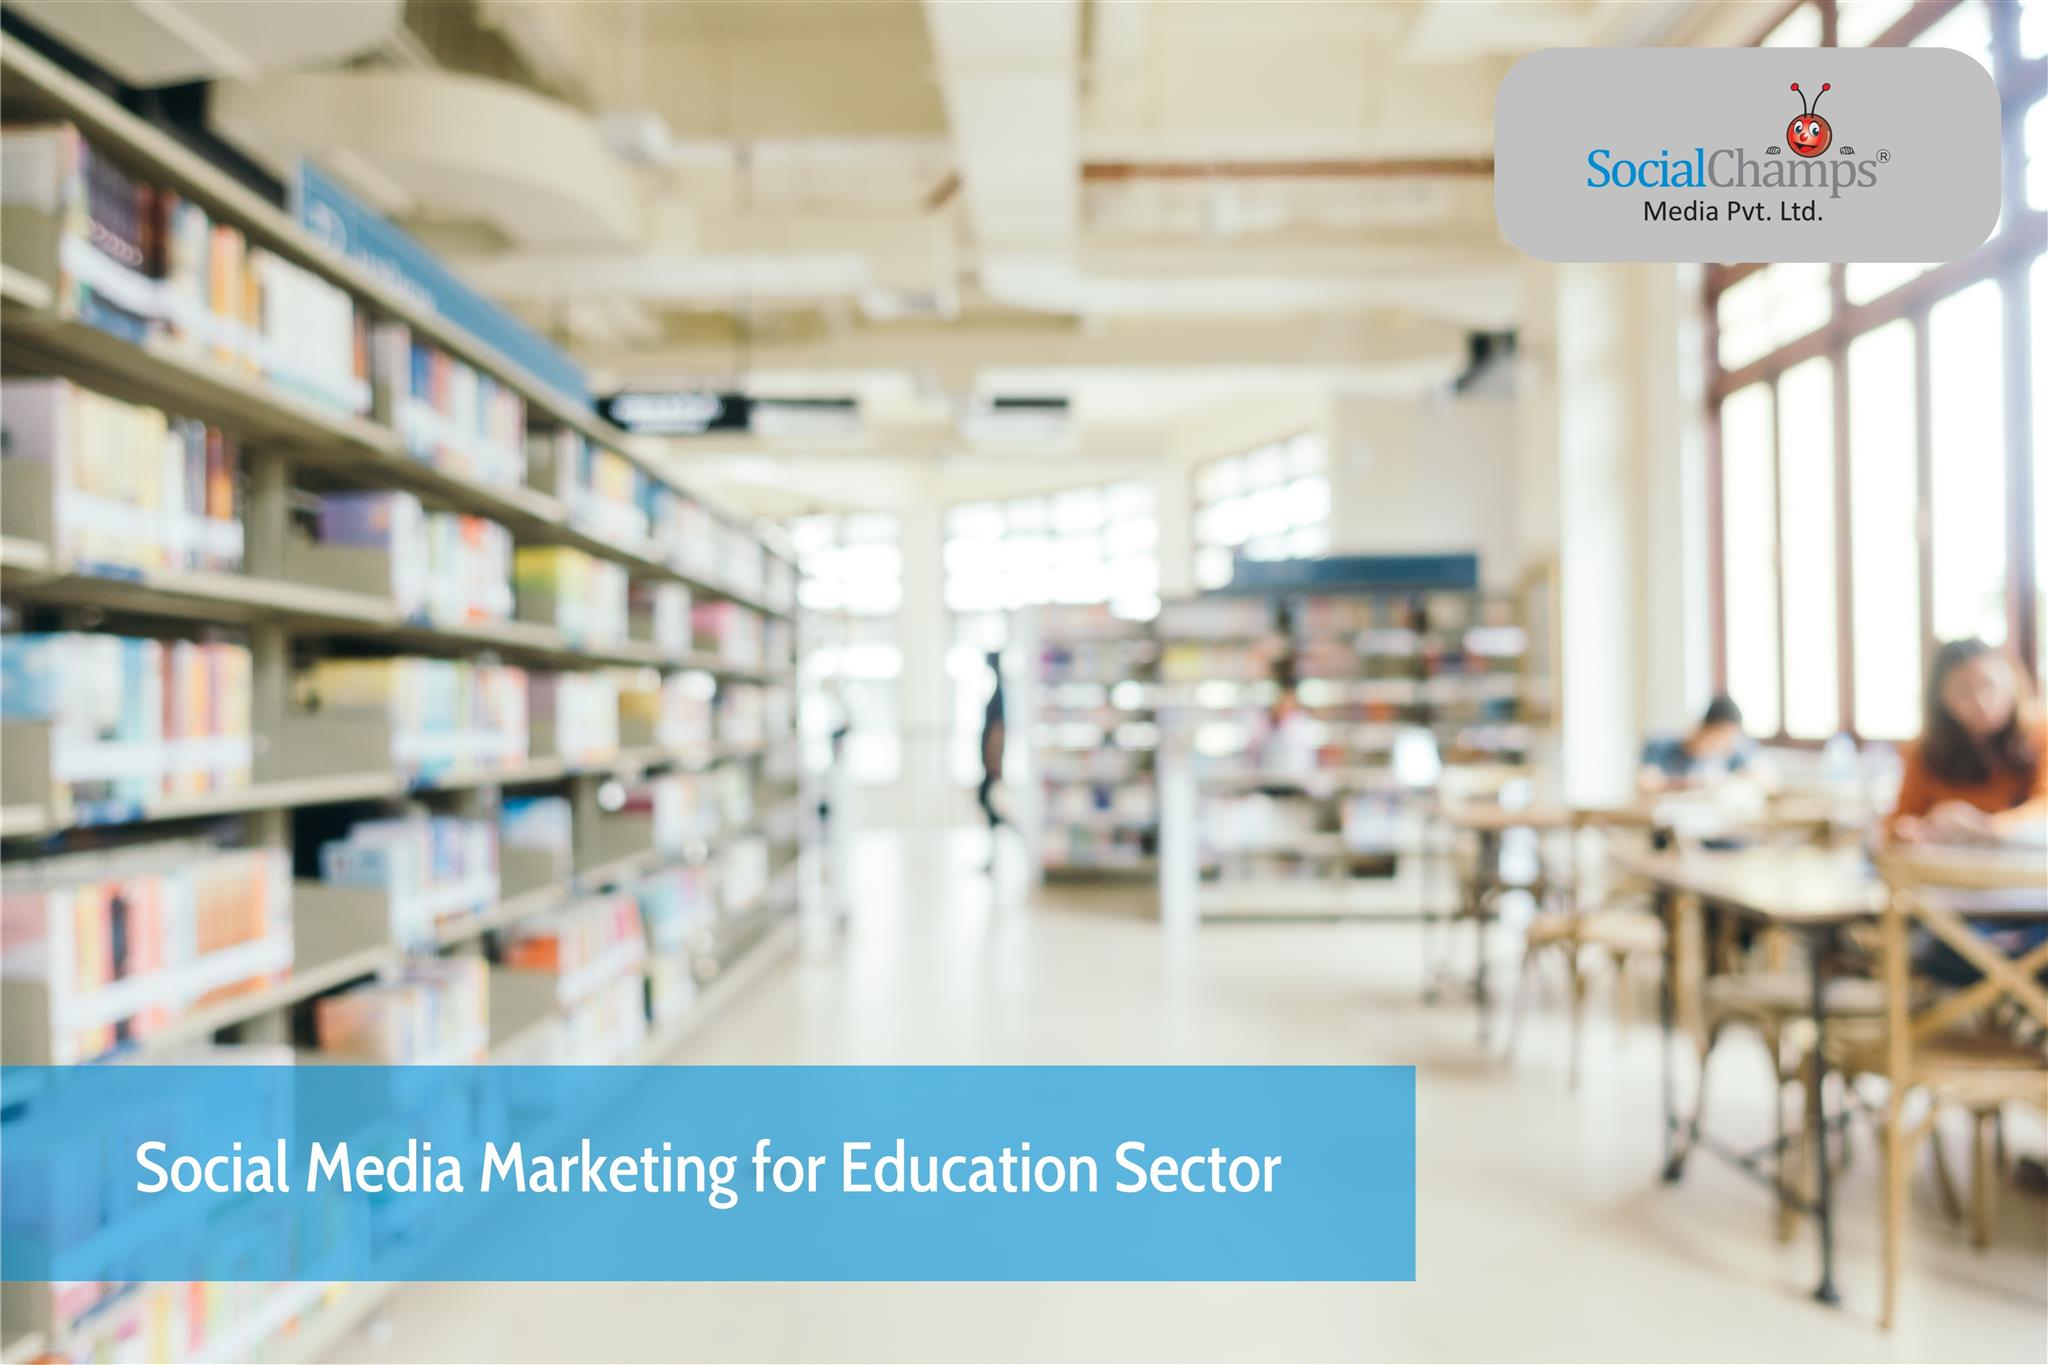 Social Media Marketing for Education Sector